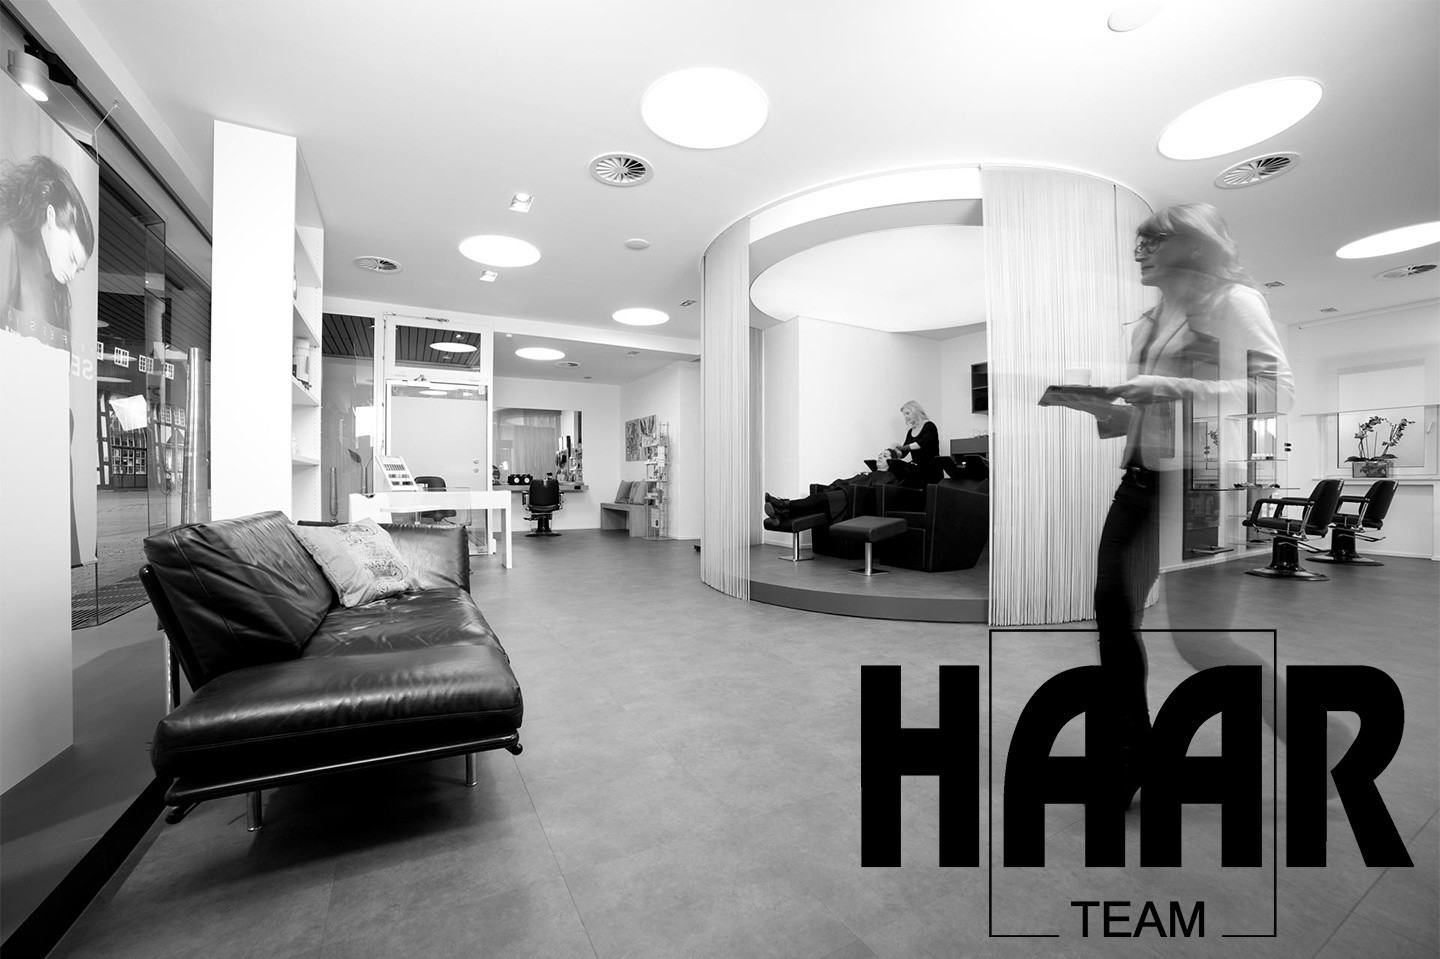 Haarteam